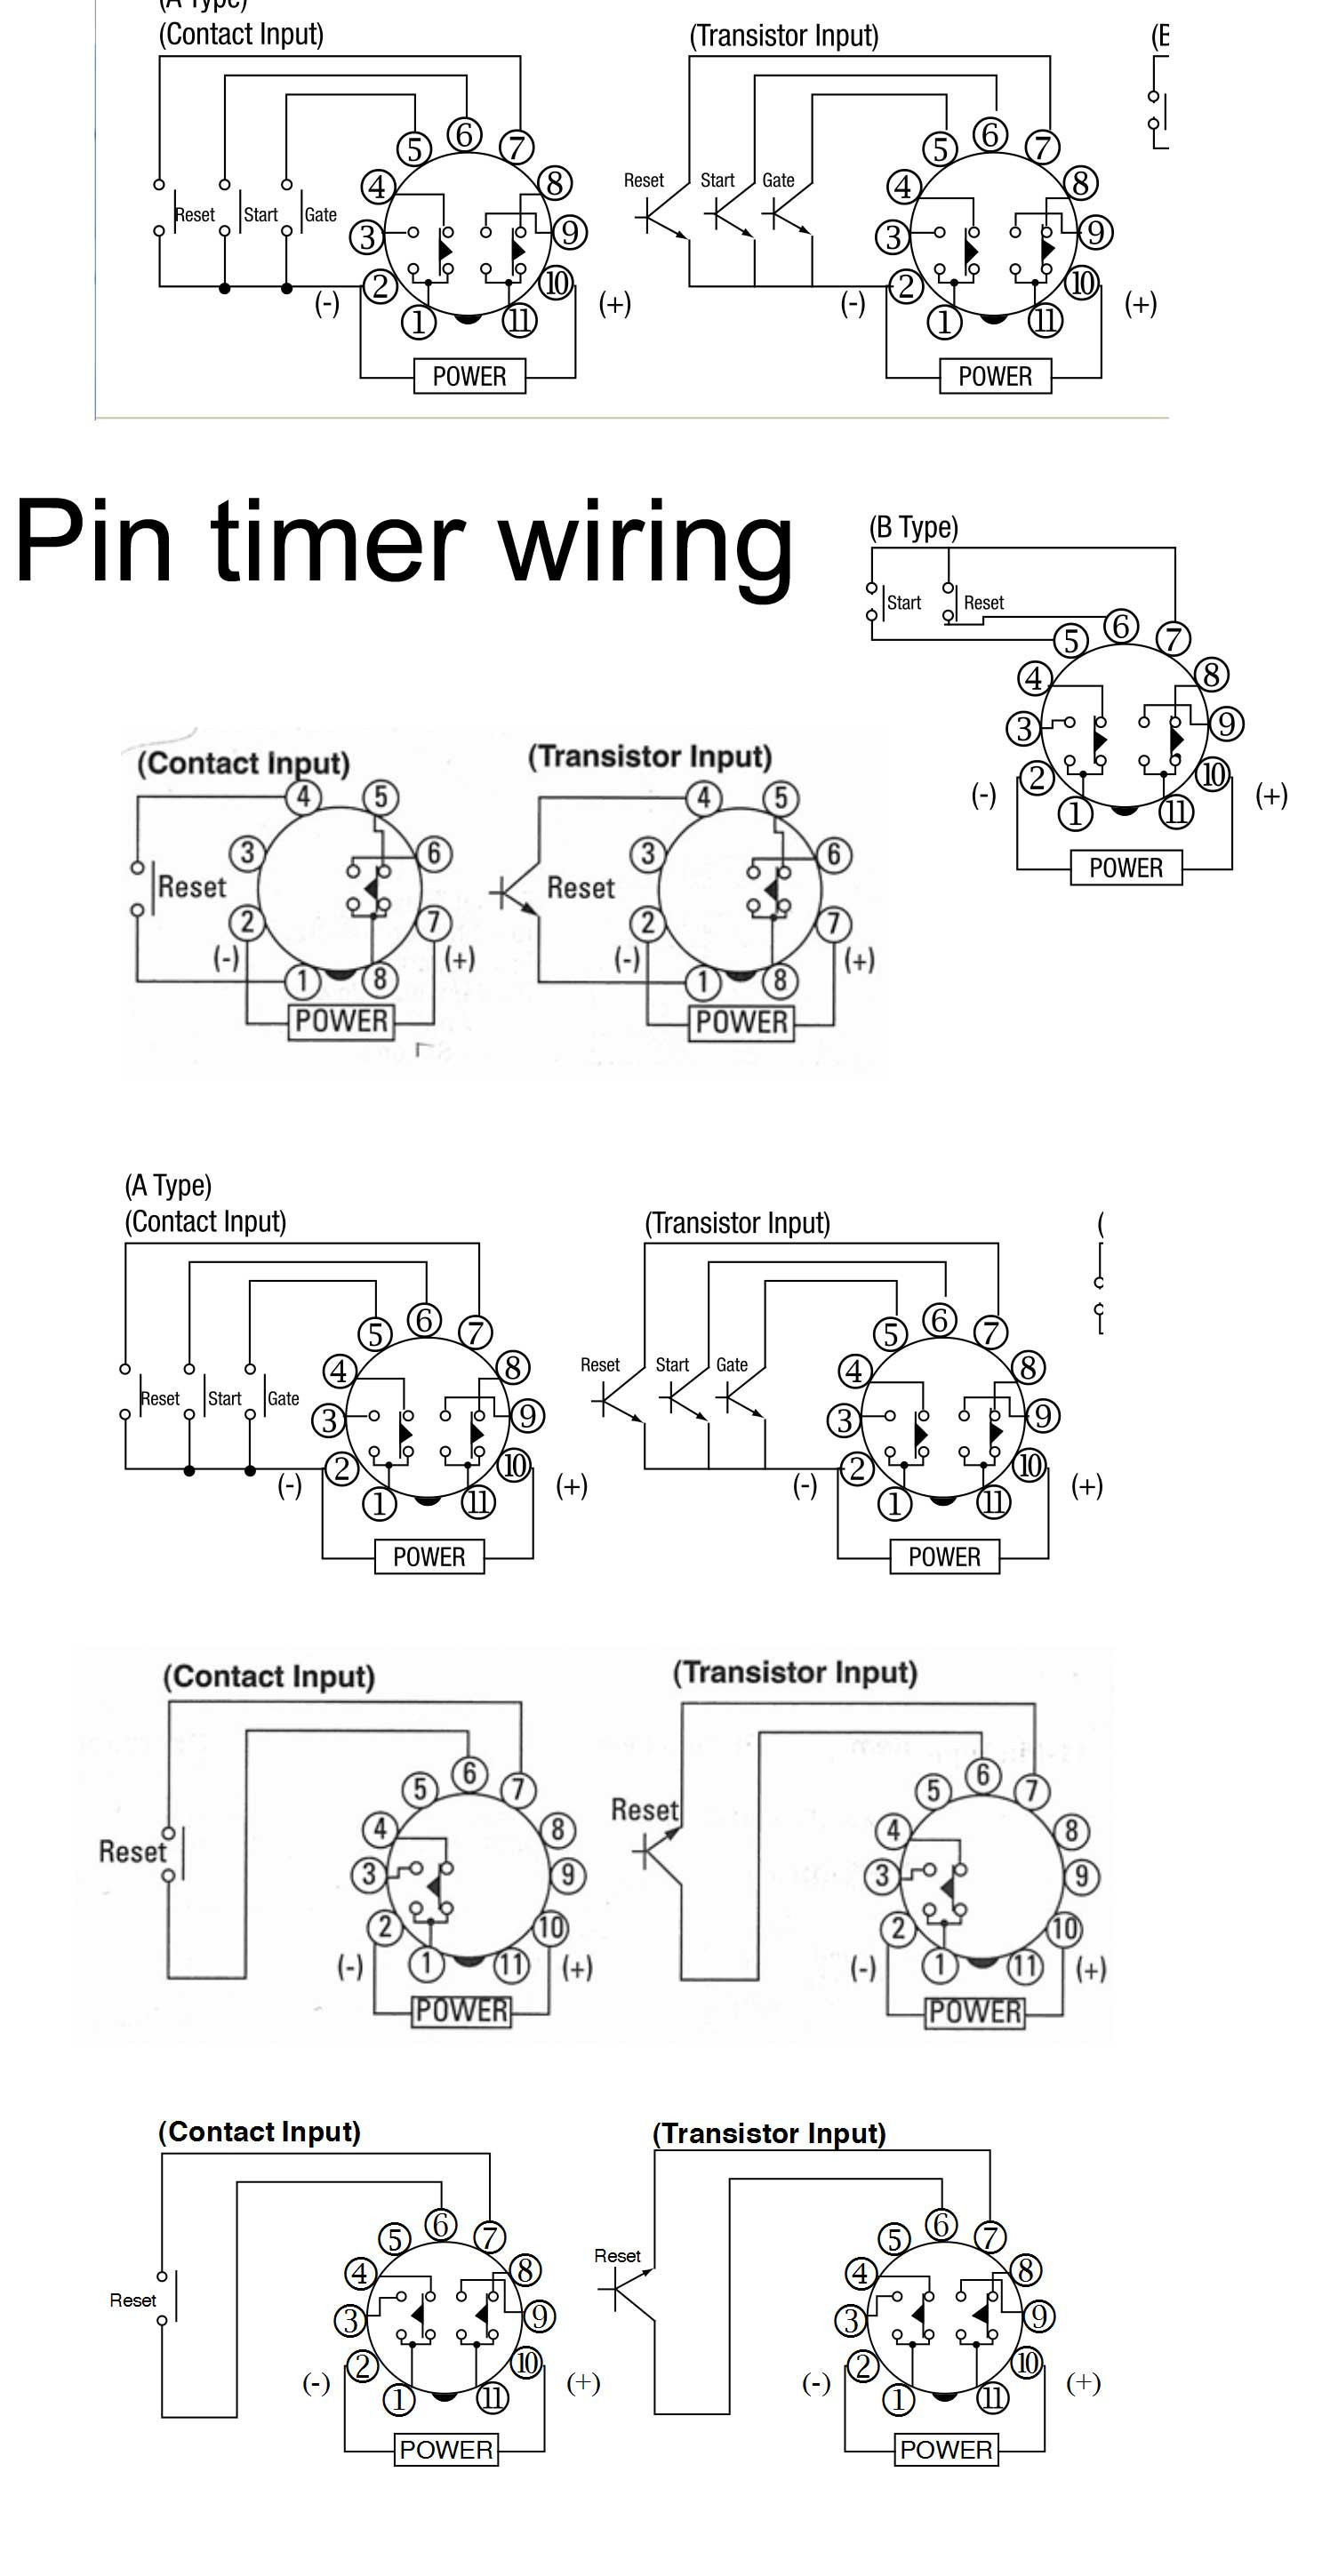 dayton time delay relay wiring diagram Collection-wiper motor wiring diagram on dayton time delay relay wiring diagram rh koloewrty co 5X827n Relay Dayton Electric Manufacturing pany Relays 14-k